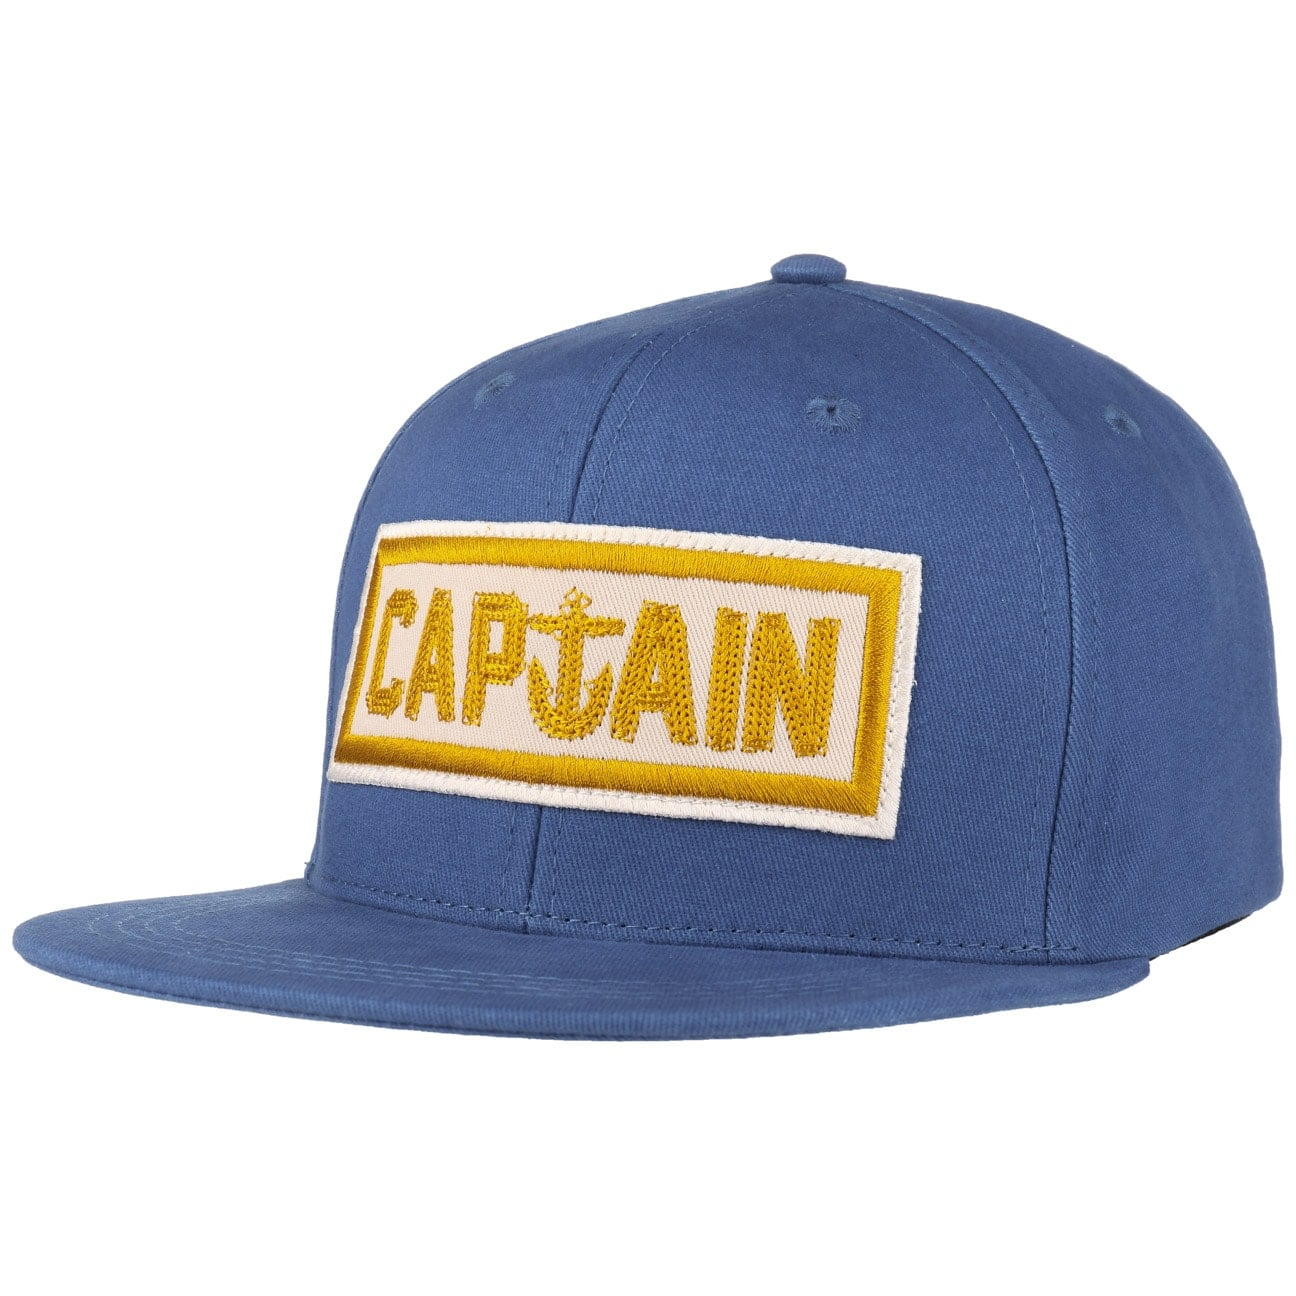 Casquette Naval Snapback by Captain Fin  baseball cap